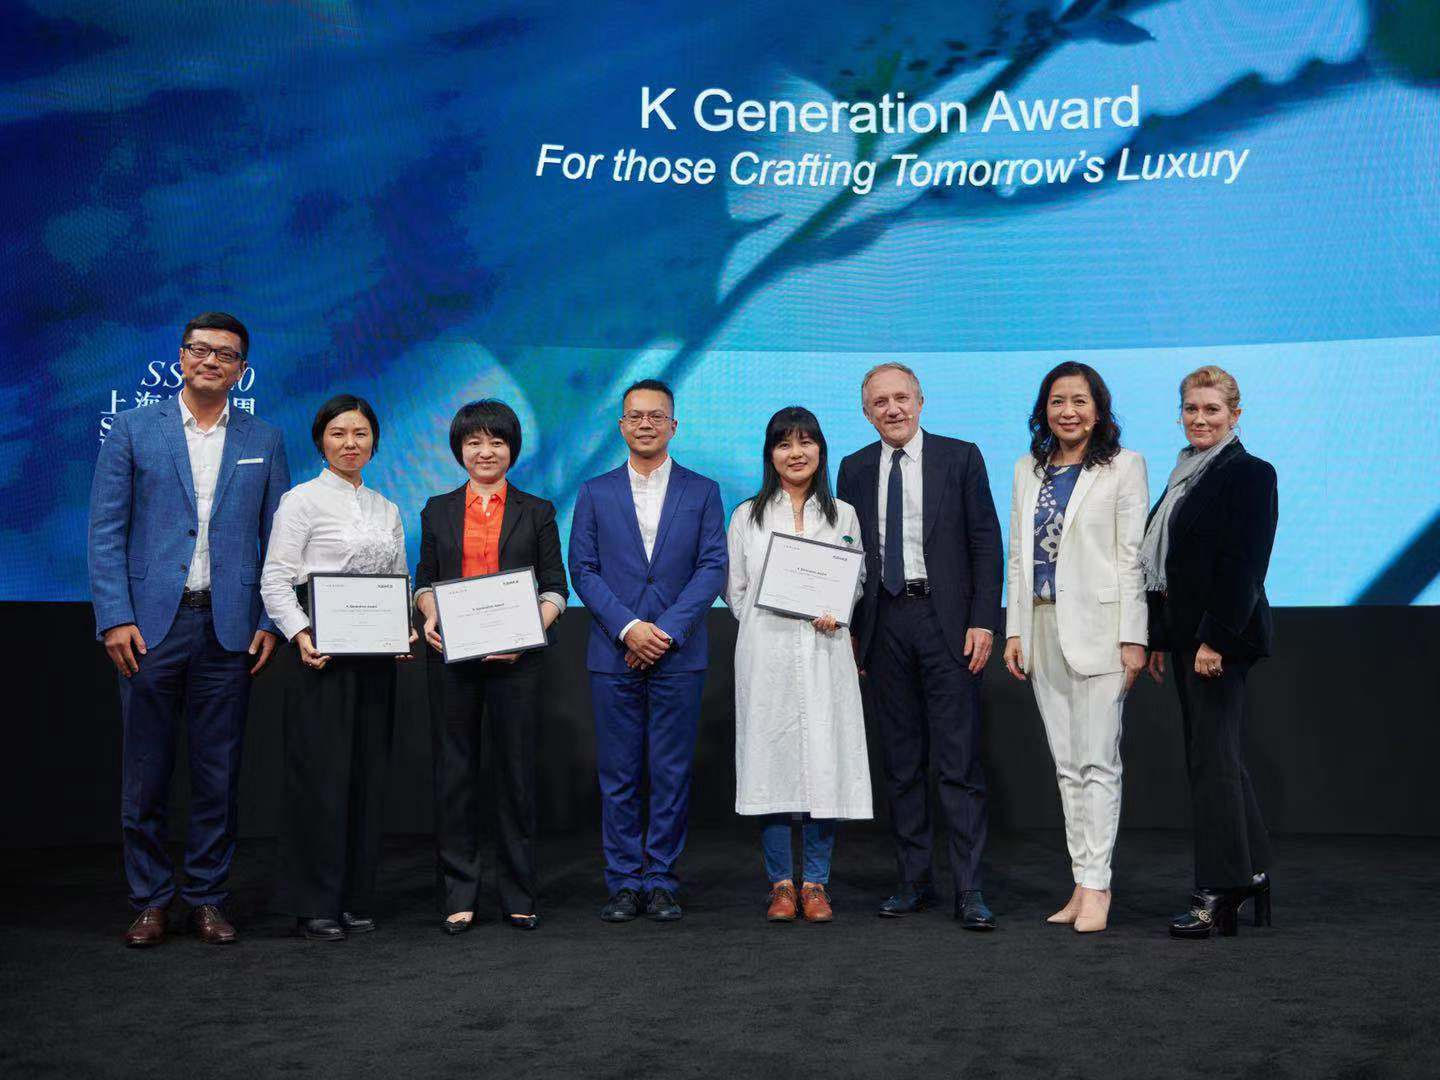 Winners of the K Generation Award with executives from Kering and Plug and Play.